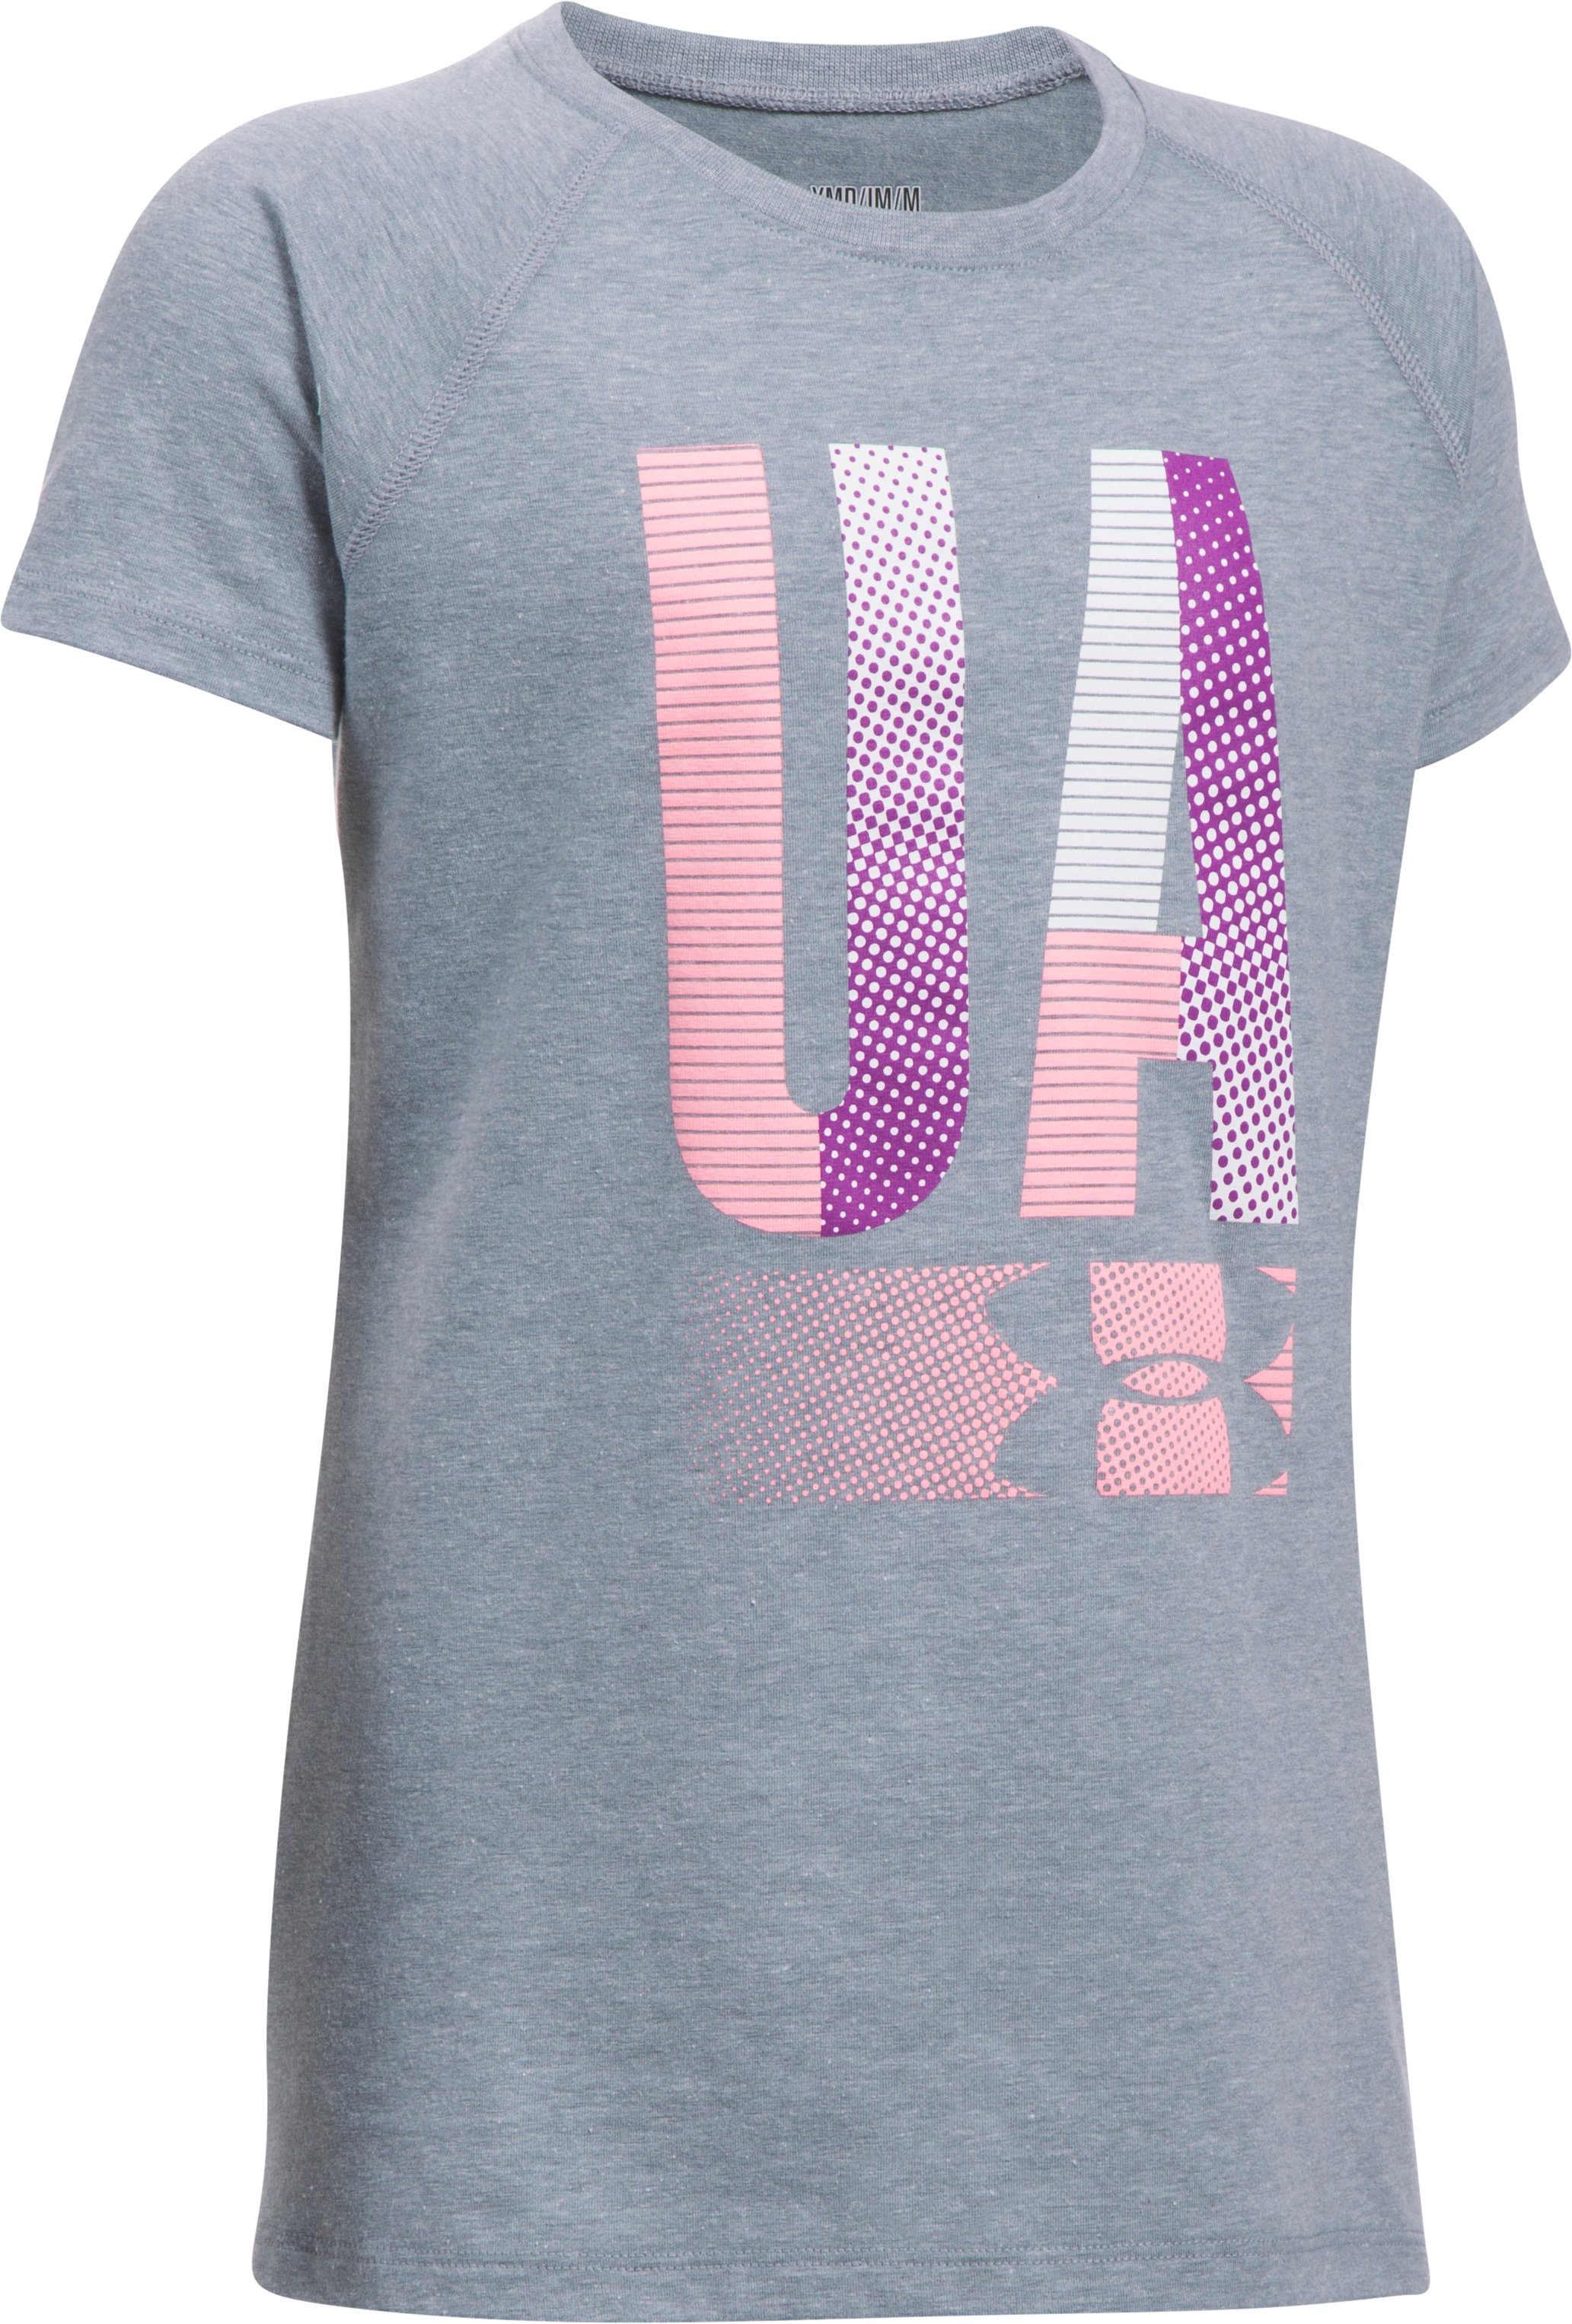 Girls' UA Multiplex Logo Short Sleeve T-Shirt, STEEL LIGHT HEATHER